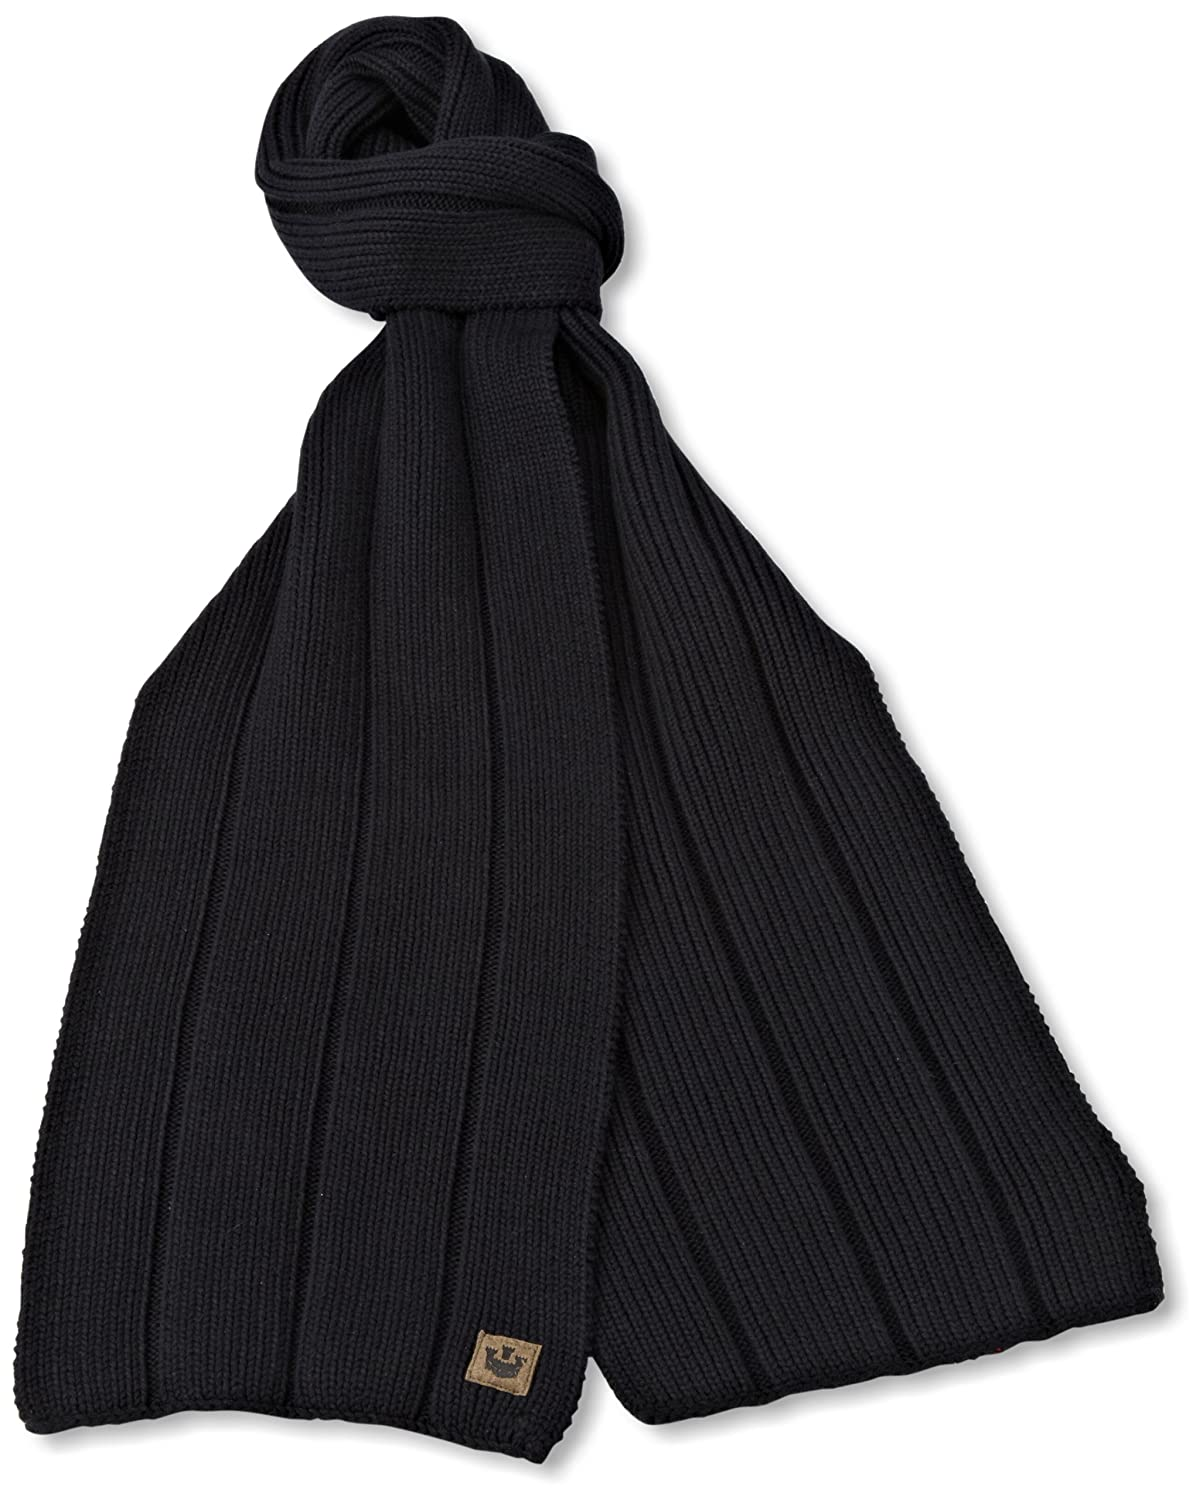 Goorin Bros. Men's Aegean Sea Scarf Black One Size Goorin Bros Mens 120-2498-BLK